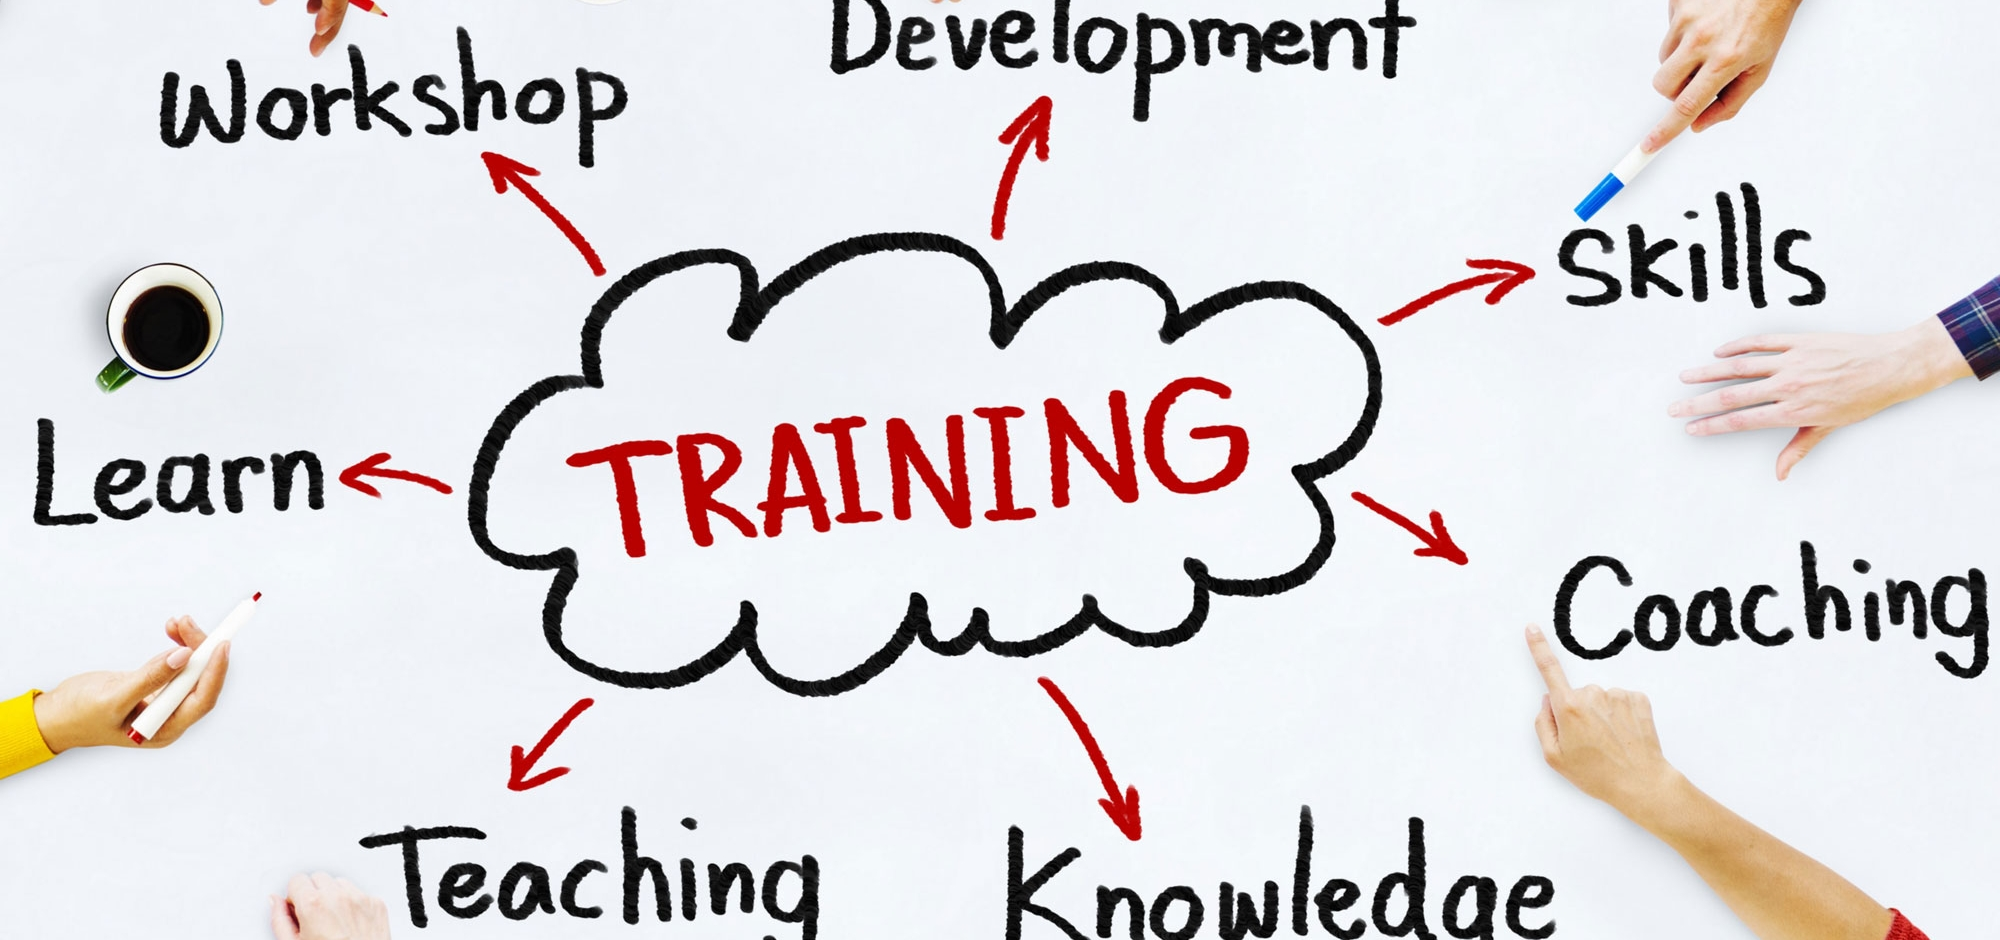 Professional Development Services & Trainings